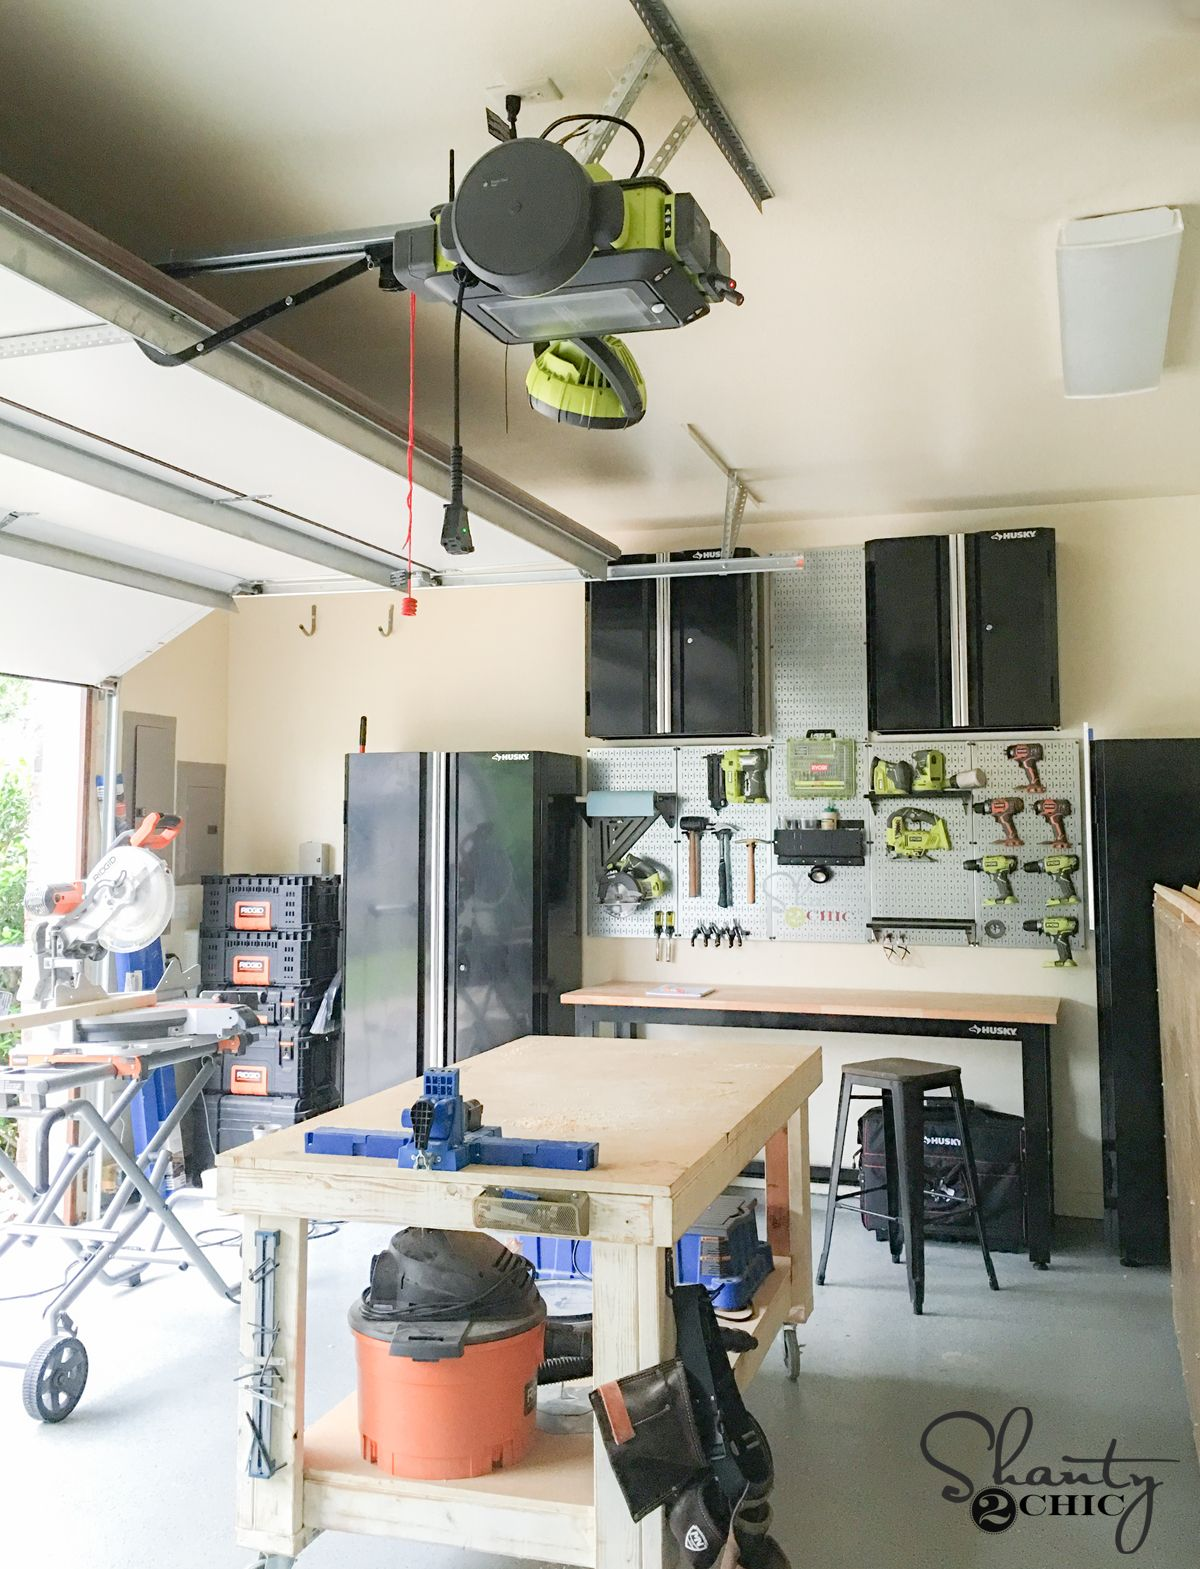 Ryobi Garage Door Fan Ryobi Garage Door Opener Giveaway Organize Garage Doors